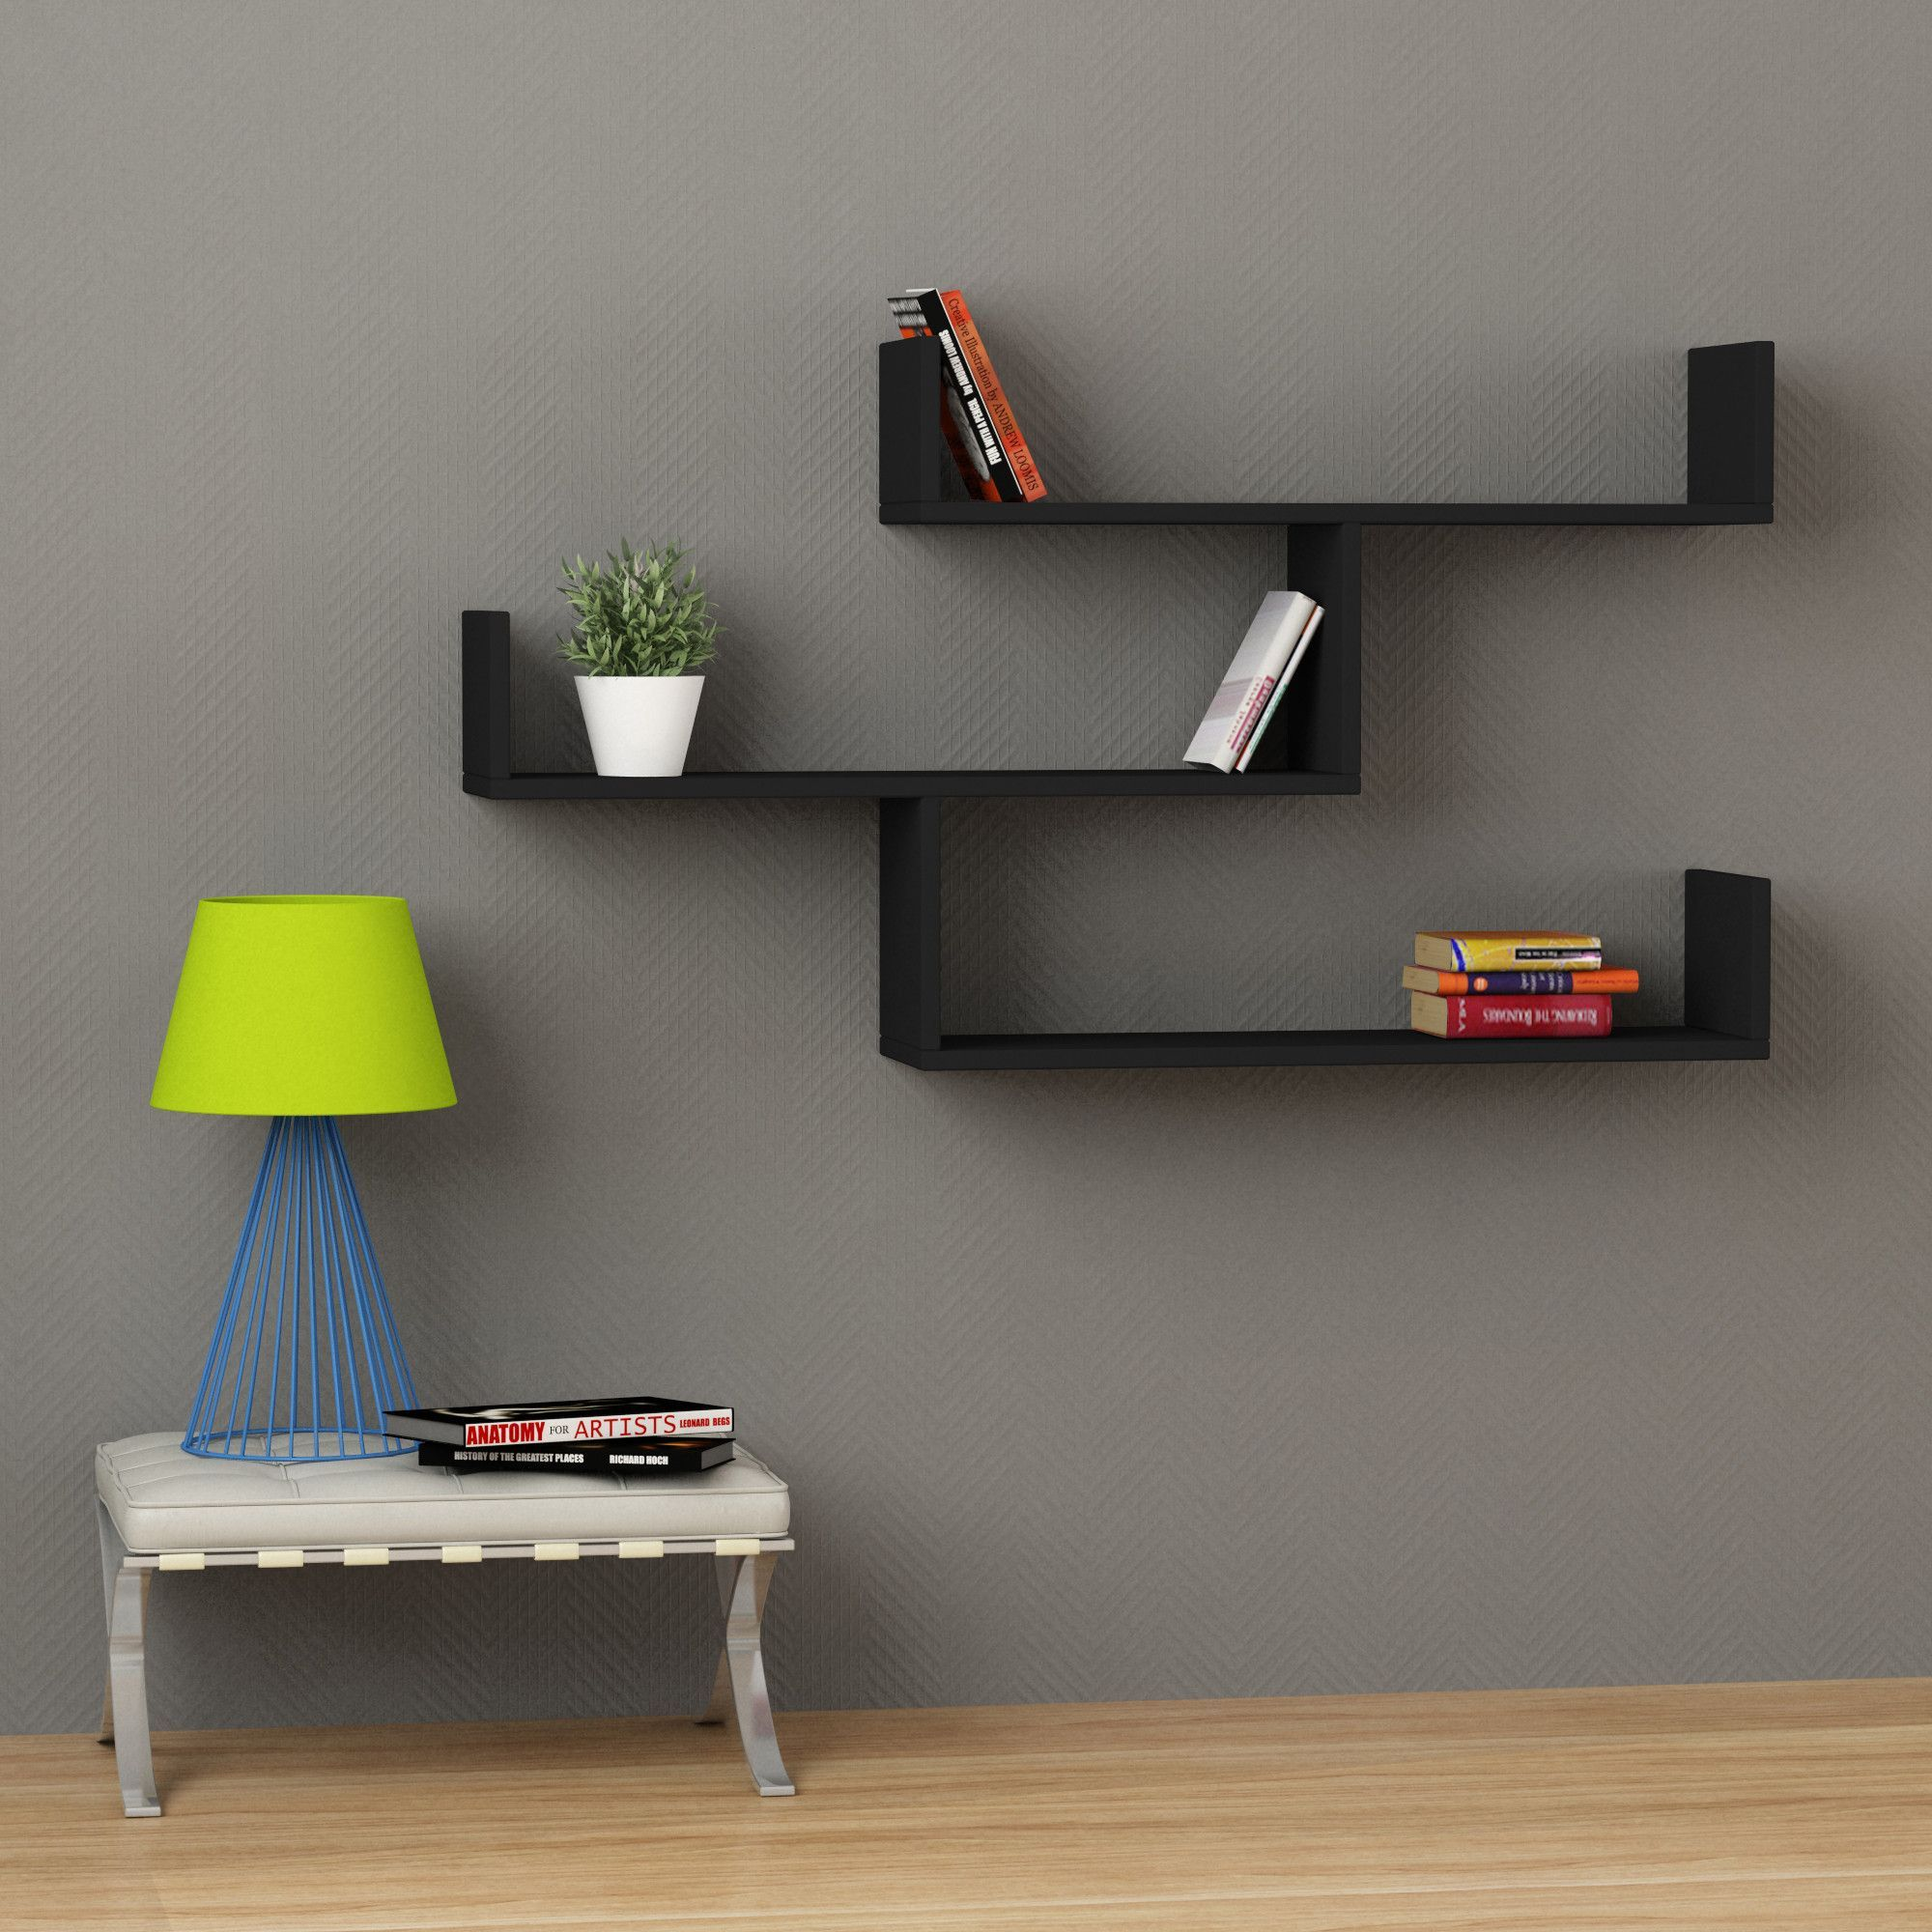 innovative space saving furniture. This Simple And Popular Modern Style Wall Shelf Has An Innovative Space- Saving Design While Being Both Decorative Functional. Space Furniture L